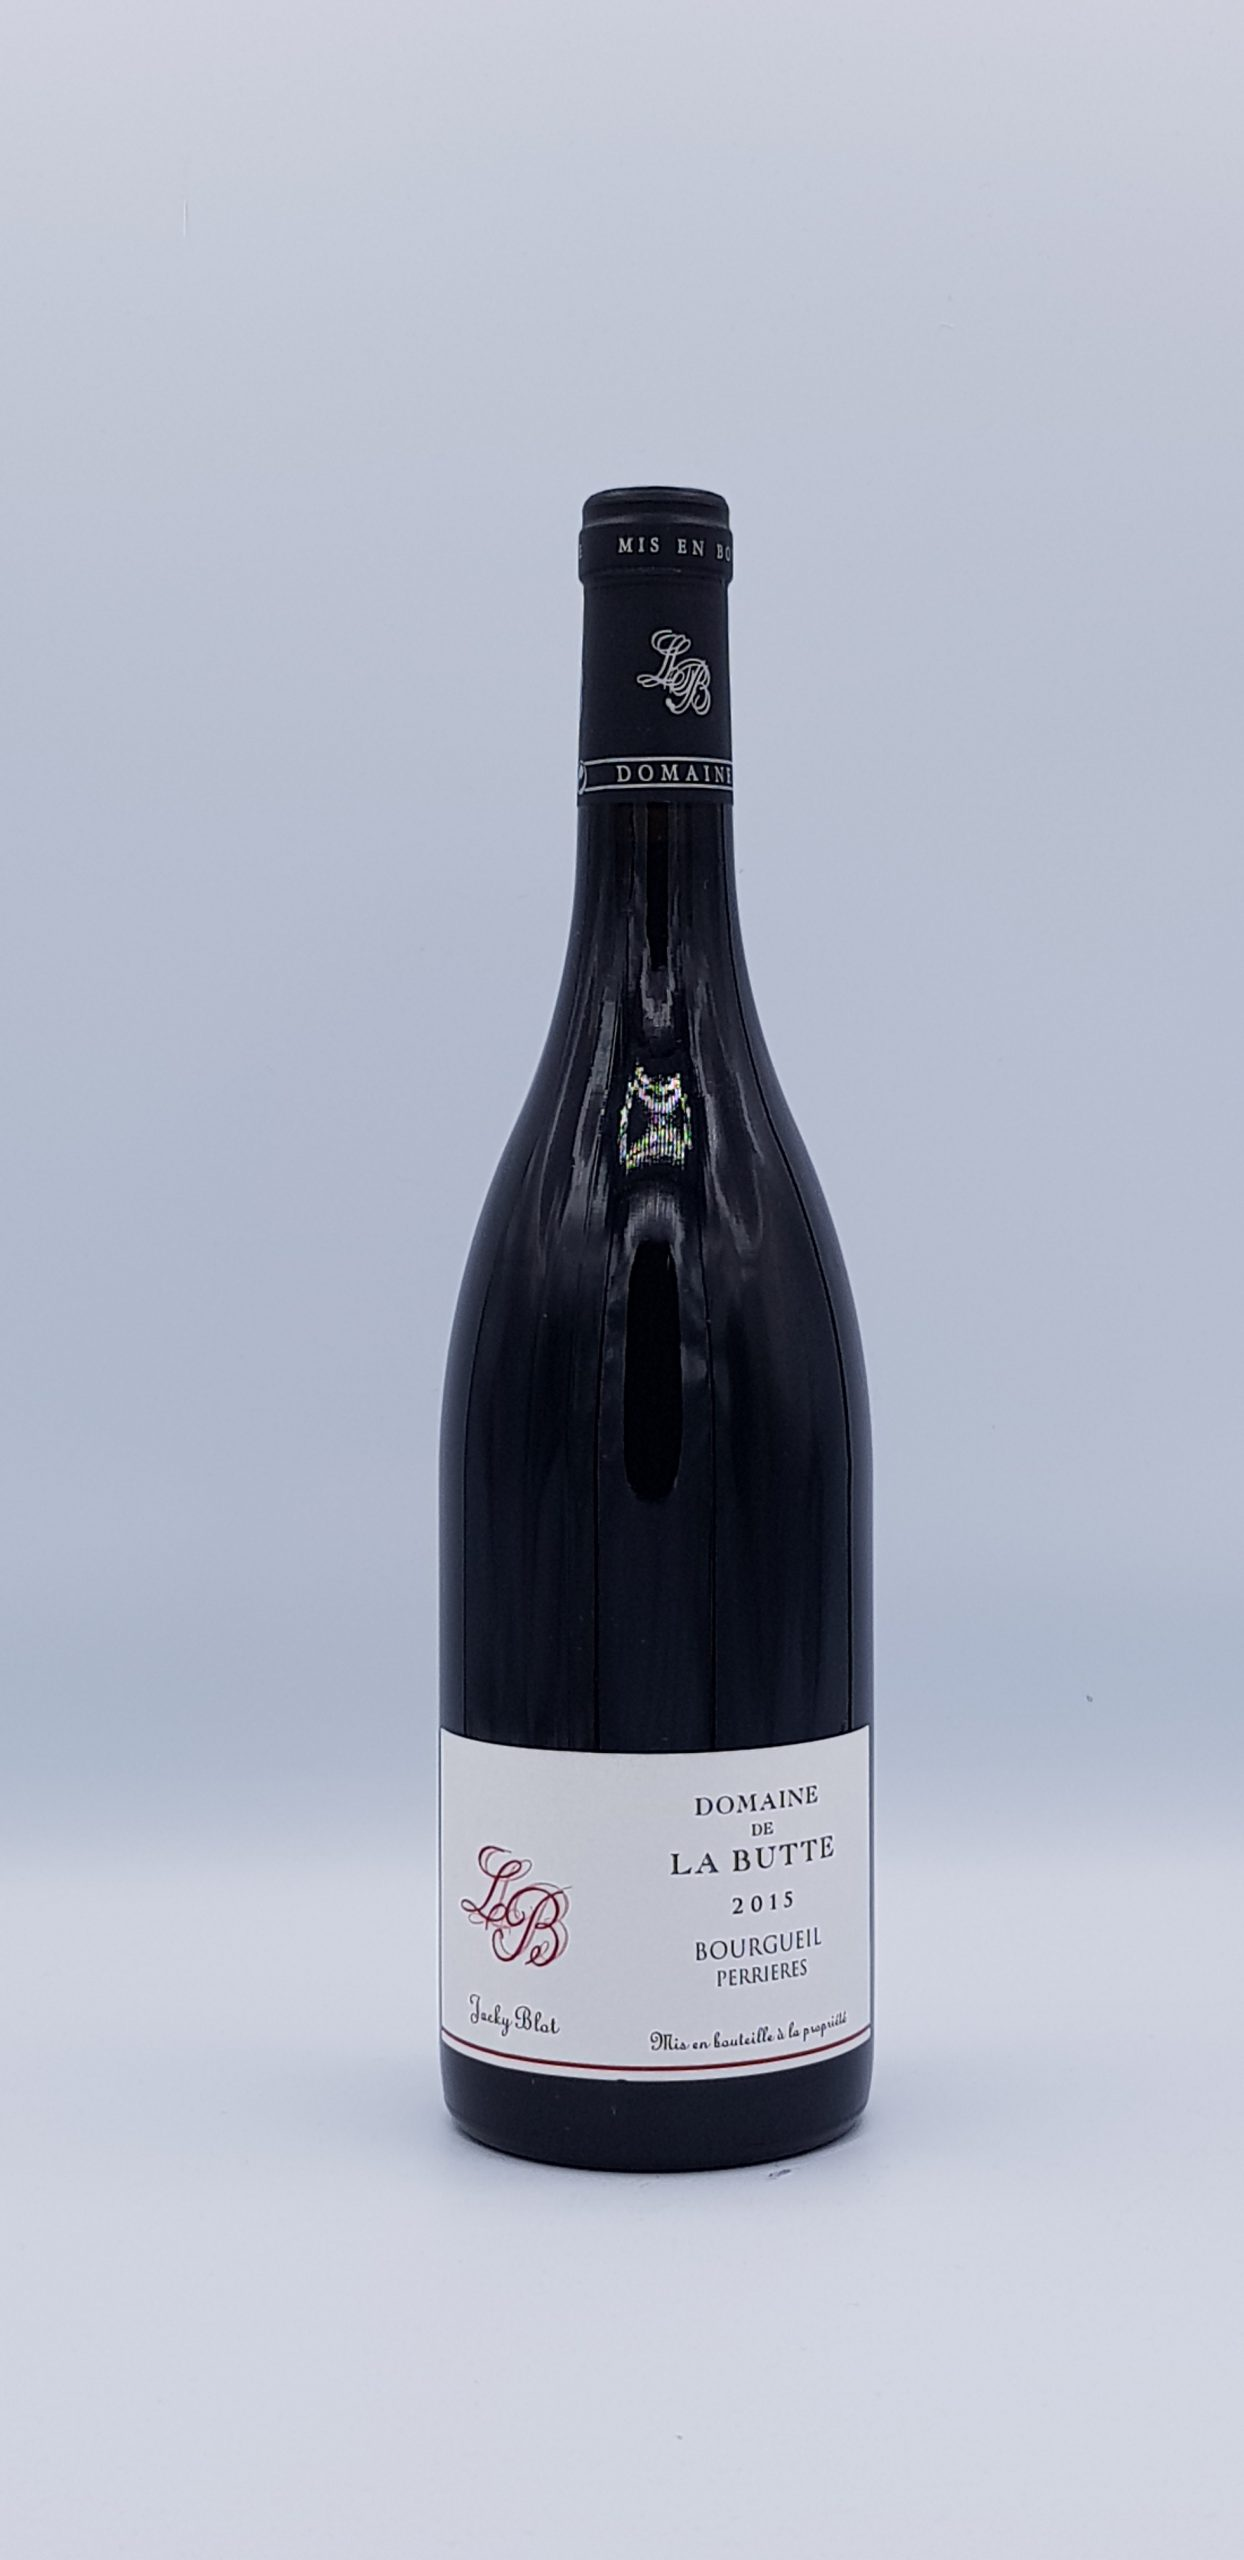 Bourgueil 2015 Perriere